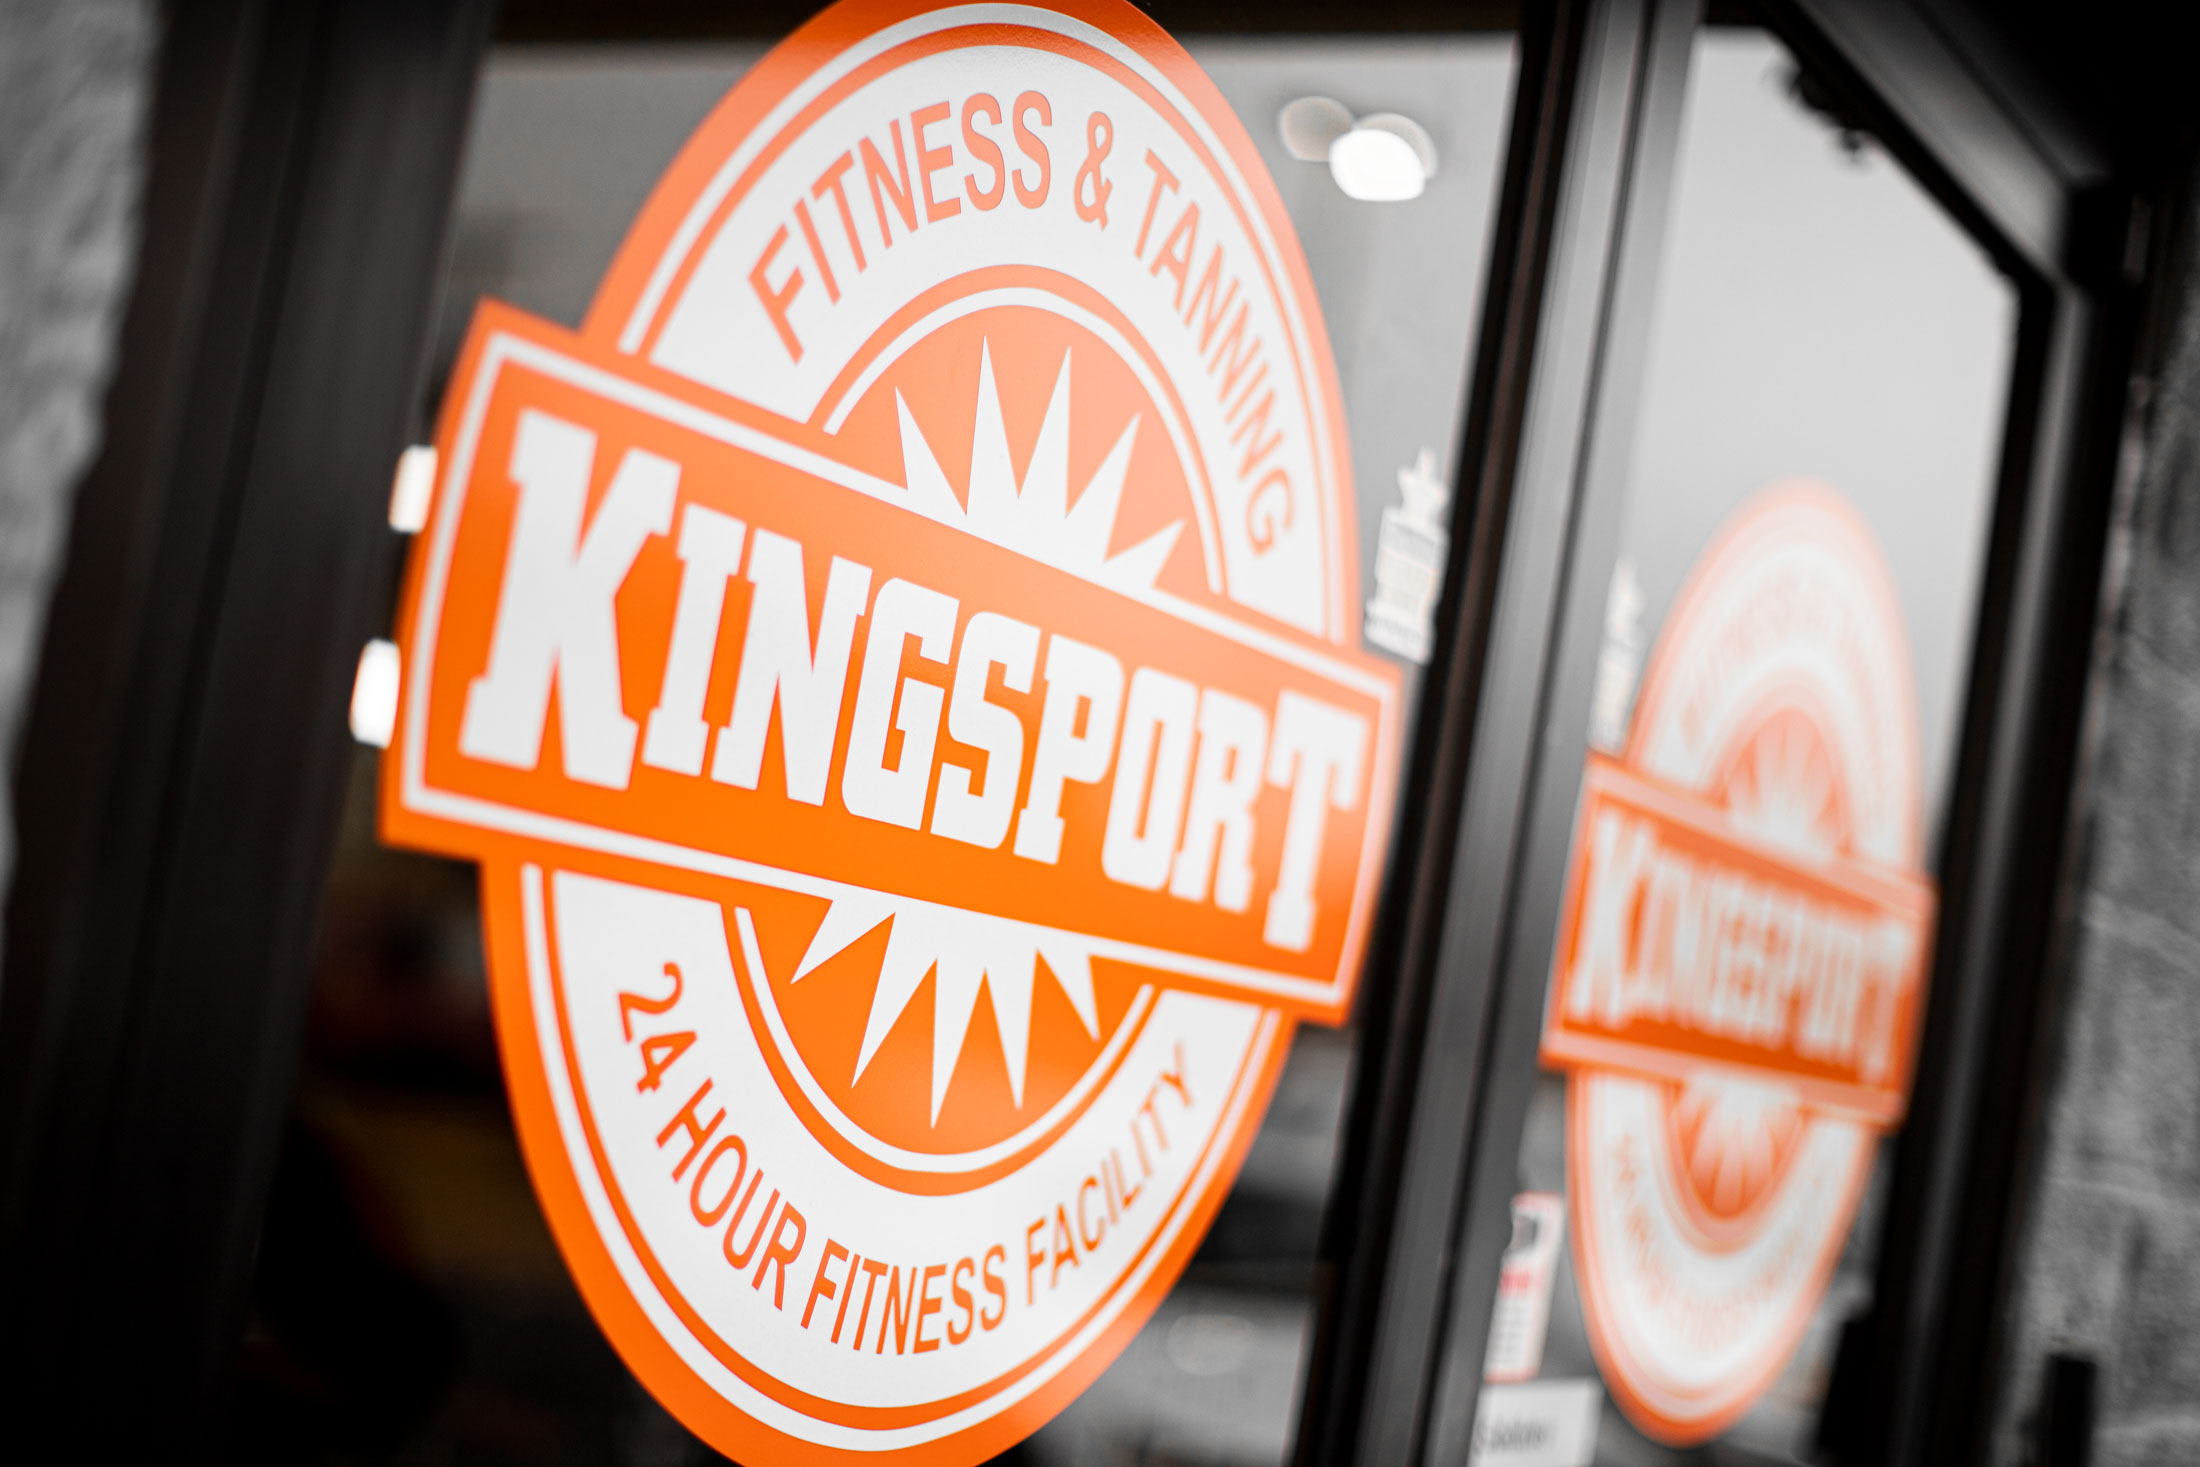 orange and white circular logo with text reading Kingsport Fitness & Tanning 24 Hour Fitness Facility